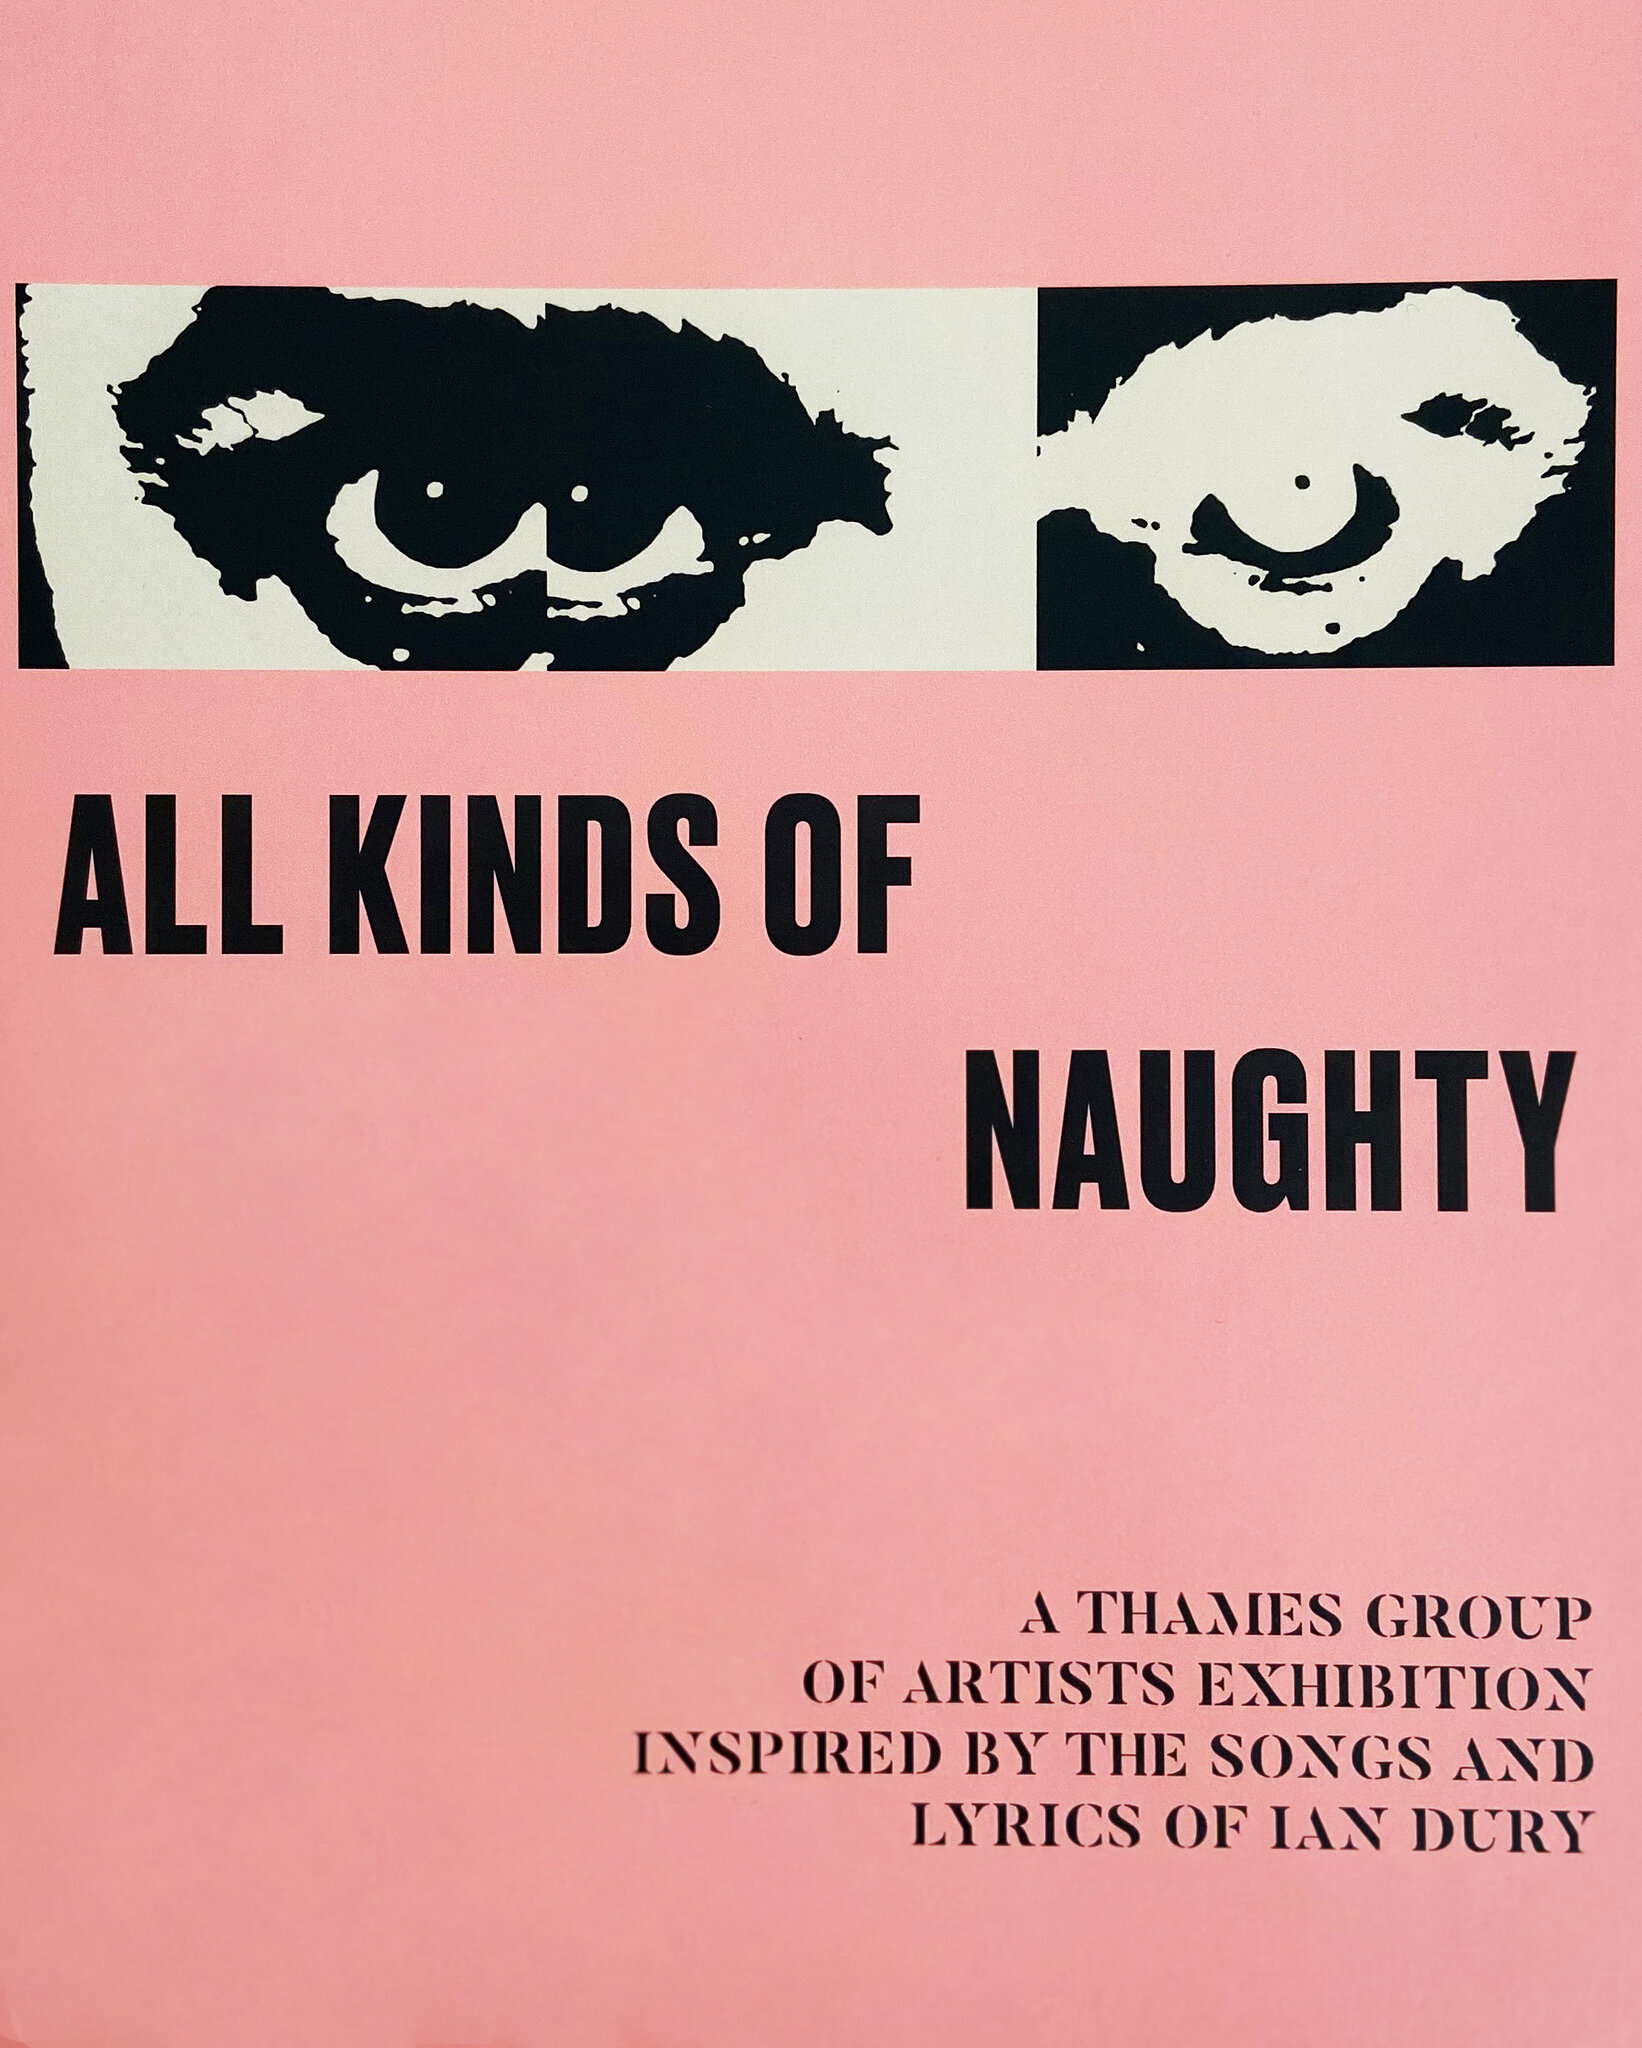 All Kinds Of Naughty: Exhibition Dates Update